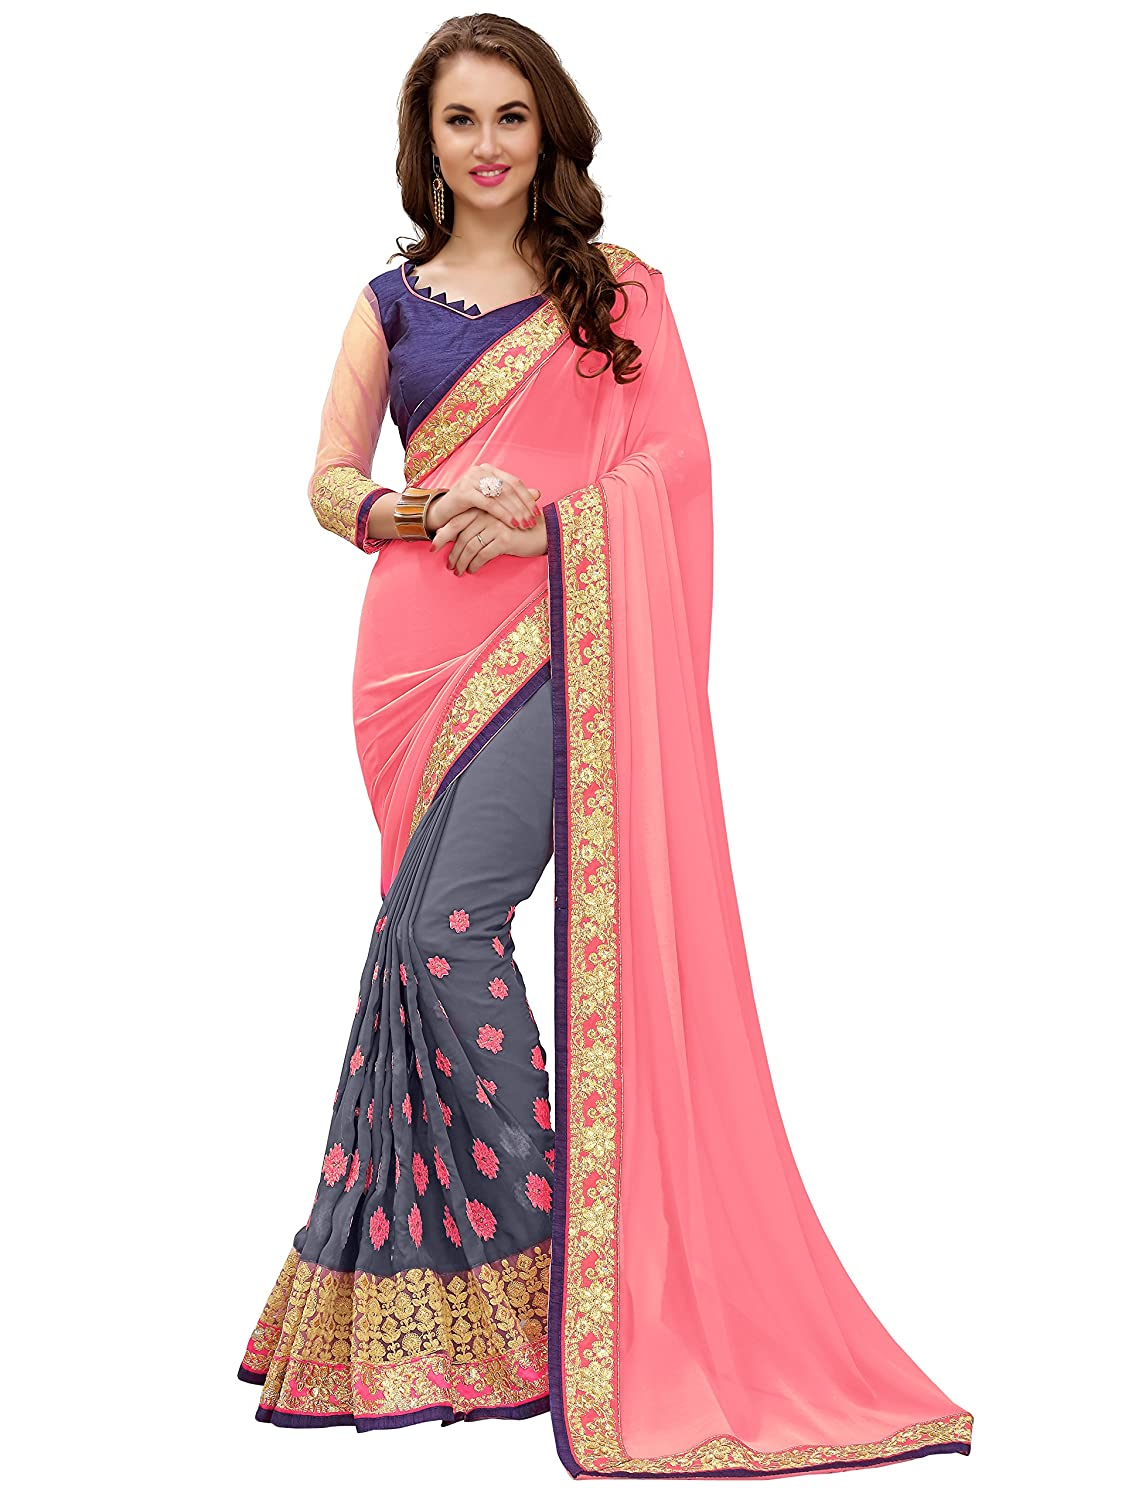 Panchratna Women's Georgette Half and Half Saree with blouse piece